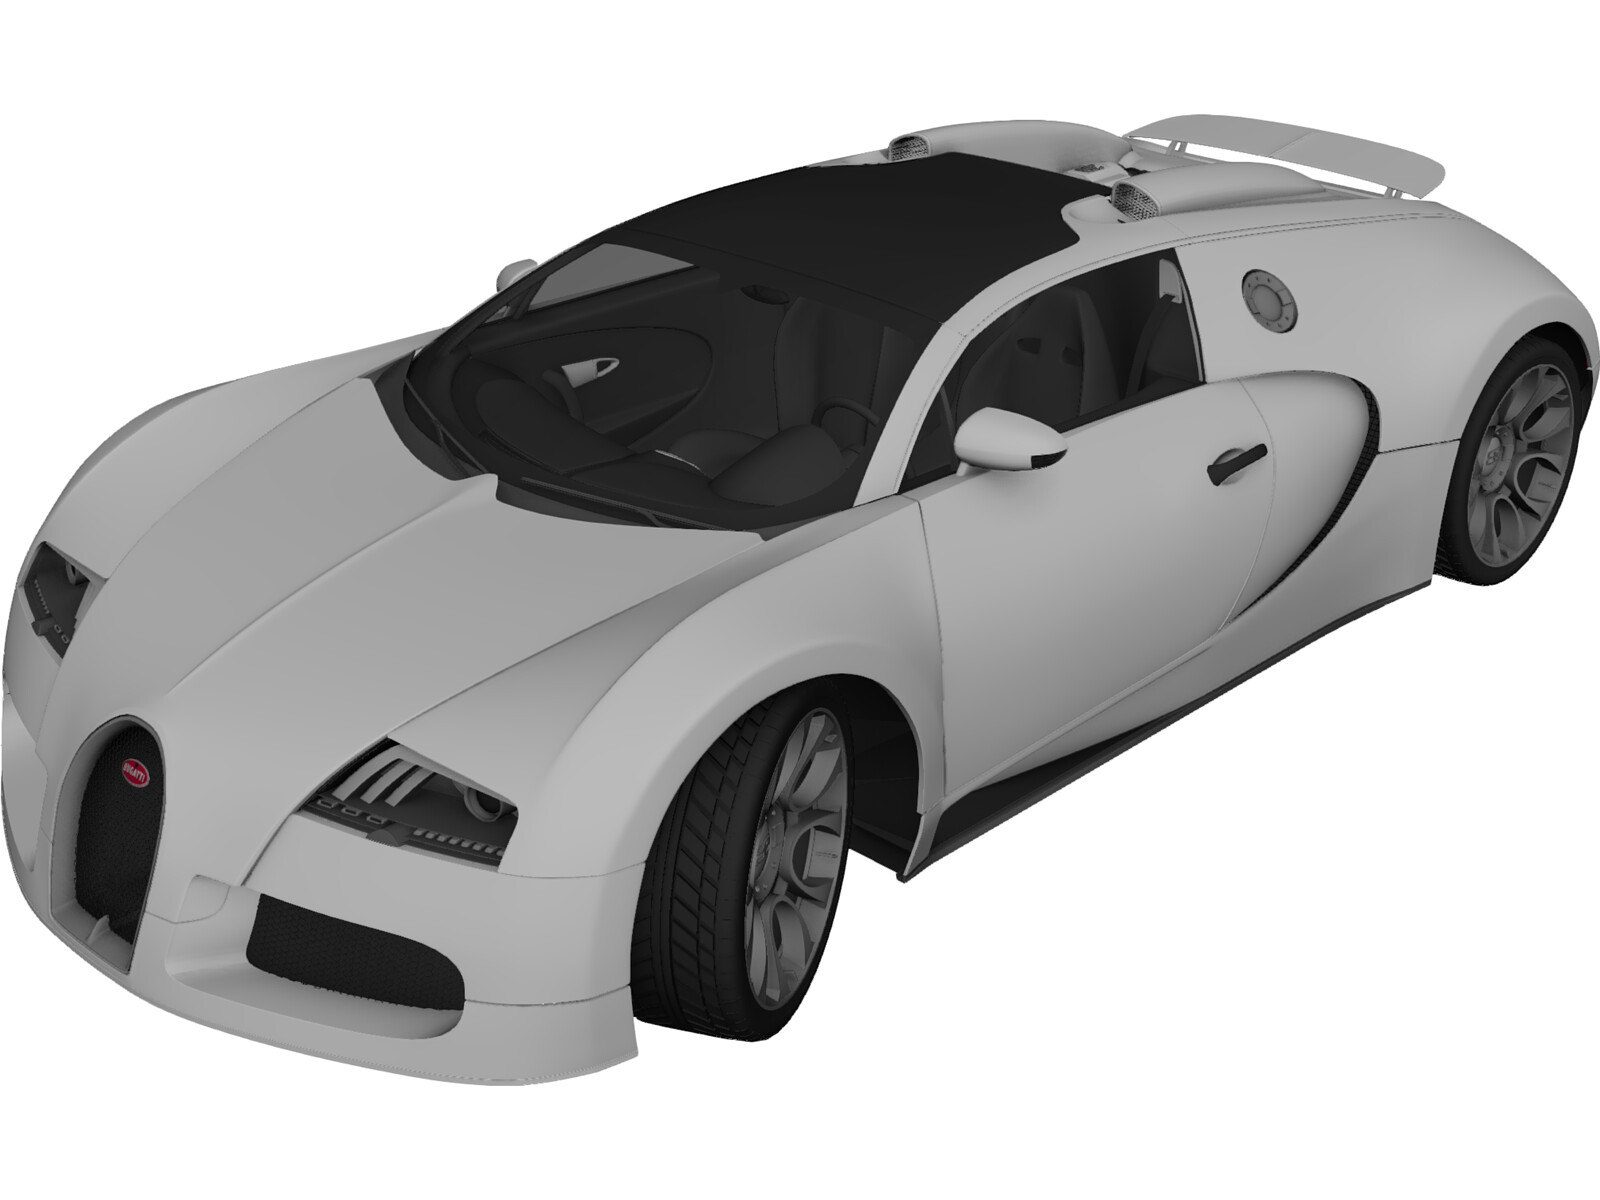 Bugatti Veyron Grand Sport (2010) 3D Model